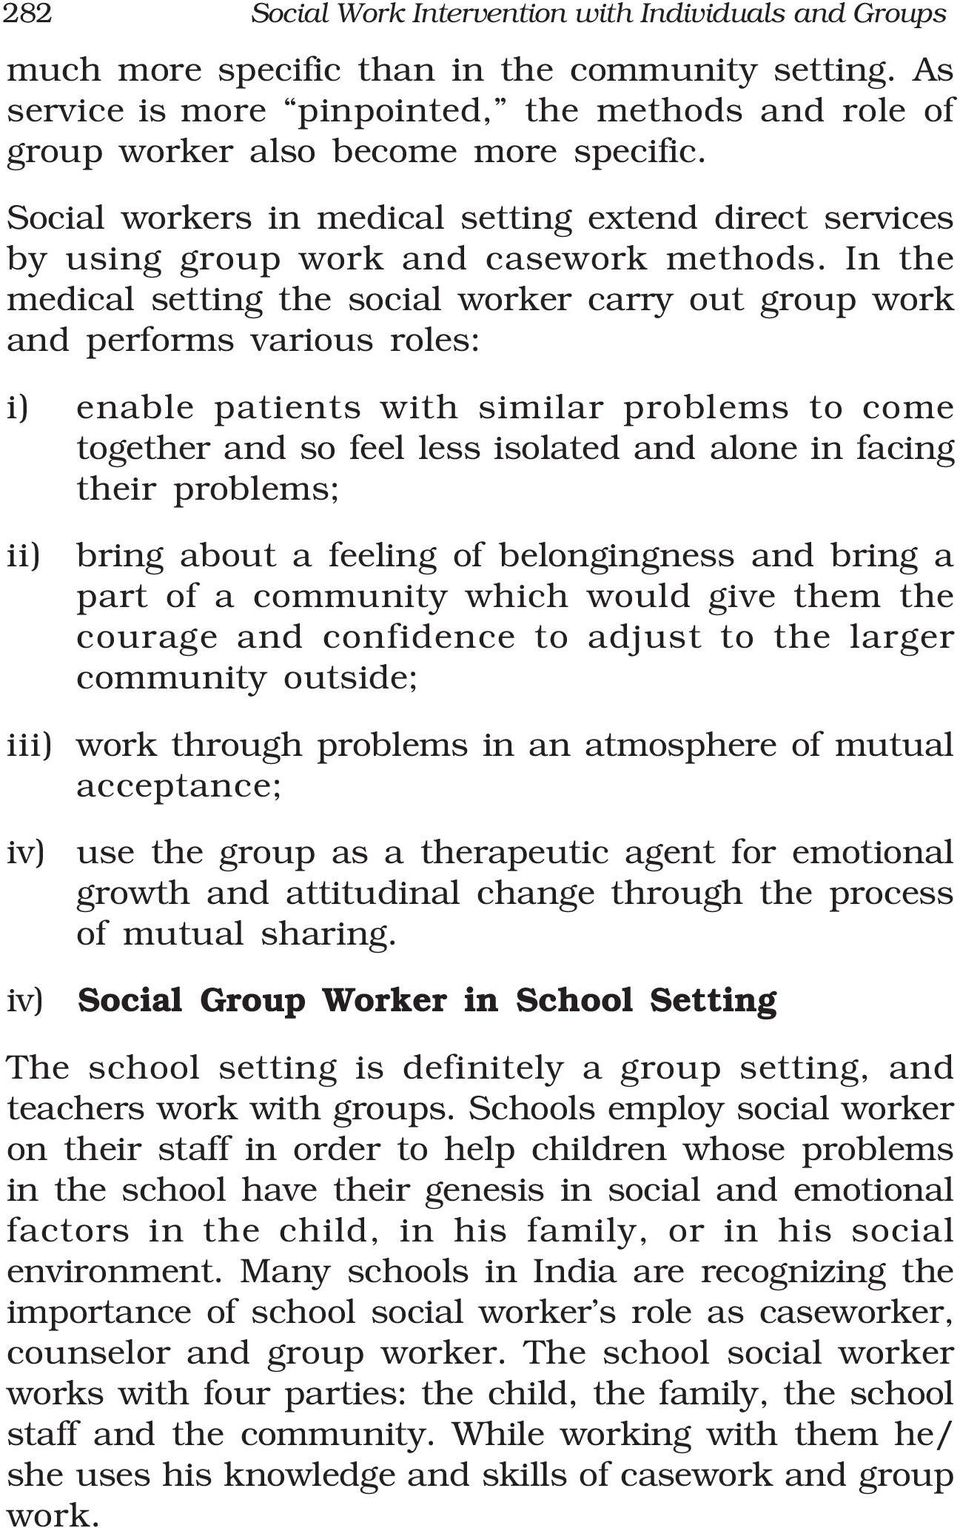 In the medical setting the social worker carry out group work and performs various roles: i) enable patients with similar problems to come together and so feel less isolated and alone in facing their